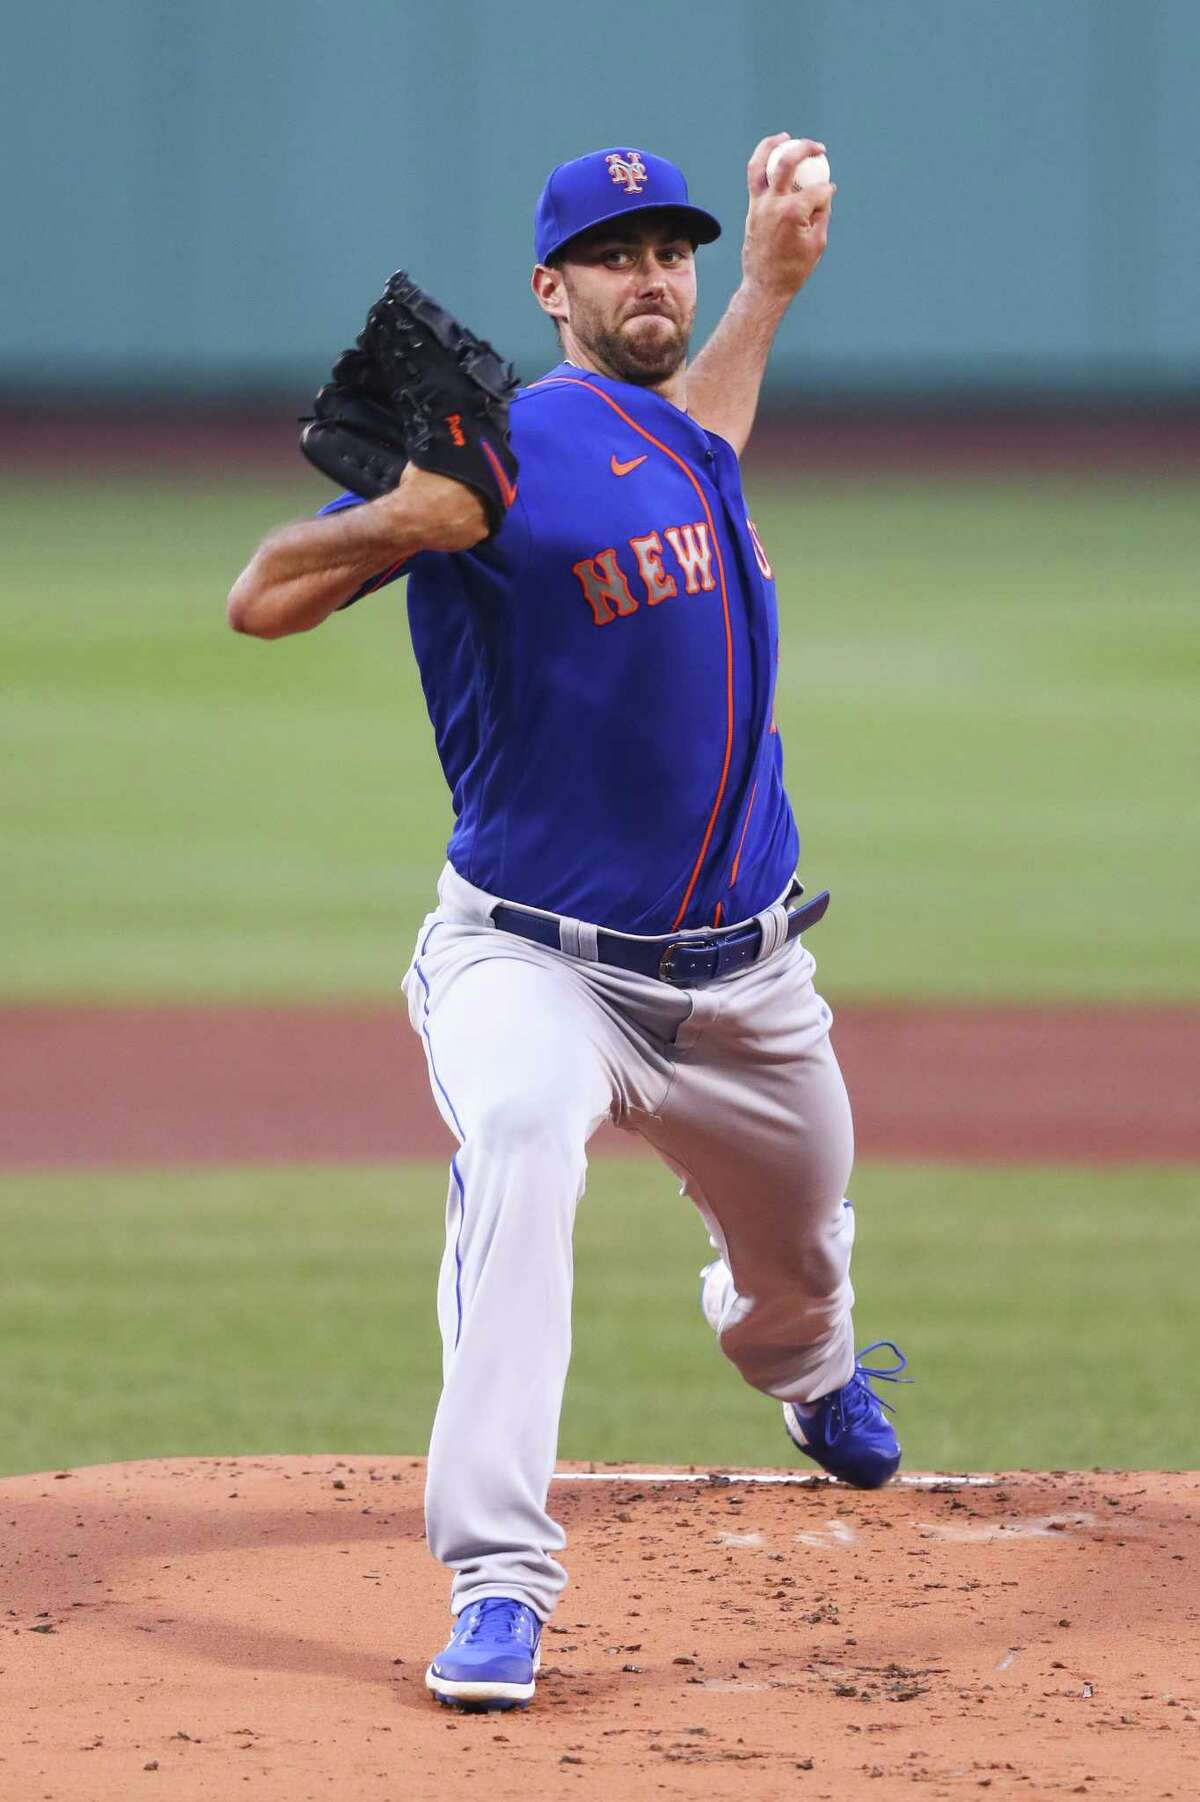 BOSTON, MA - JULY 28: David Peterson #77 of the New York Mets pitches in the first inning of a game against the Boston Red Sox at Fenway Park on July 28, 2020 in Boston, Massachusetts. (Photo by Adam Glanzman/Getty Images)